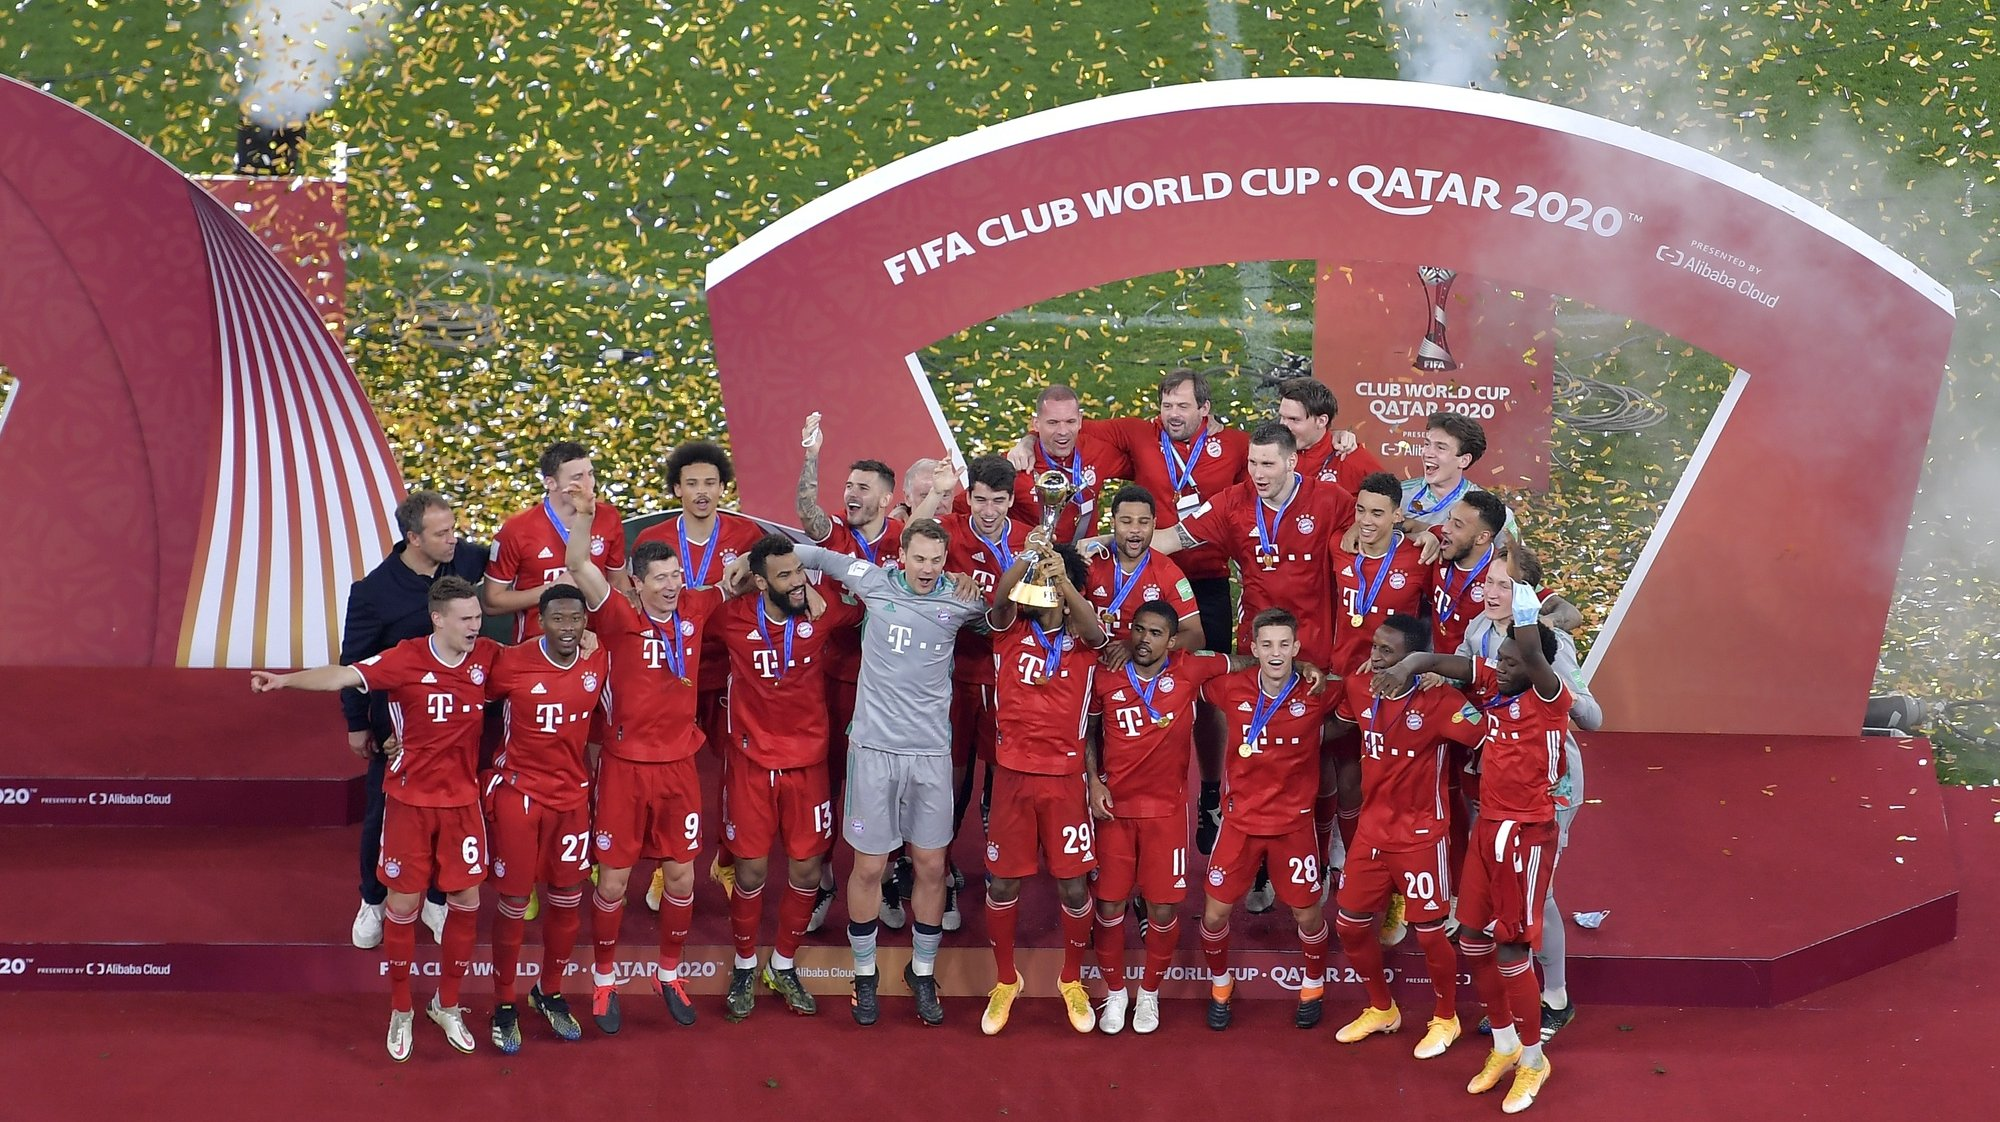 epa09005297 Bayern Munich players celebrate with the Club World Cup trophy after winning the final soccer match between Bayern Munich and Tigres UANL at the FIFA Club World Cup in Al Rayyan, Qatar, 11 February 2021.  EPA/NOUSHAD THEKKAYIL